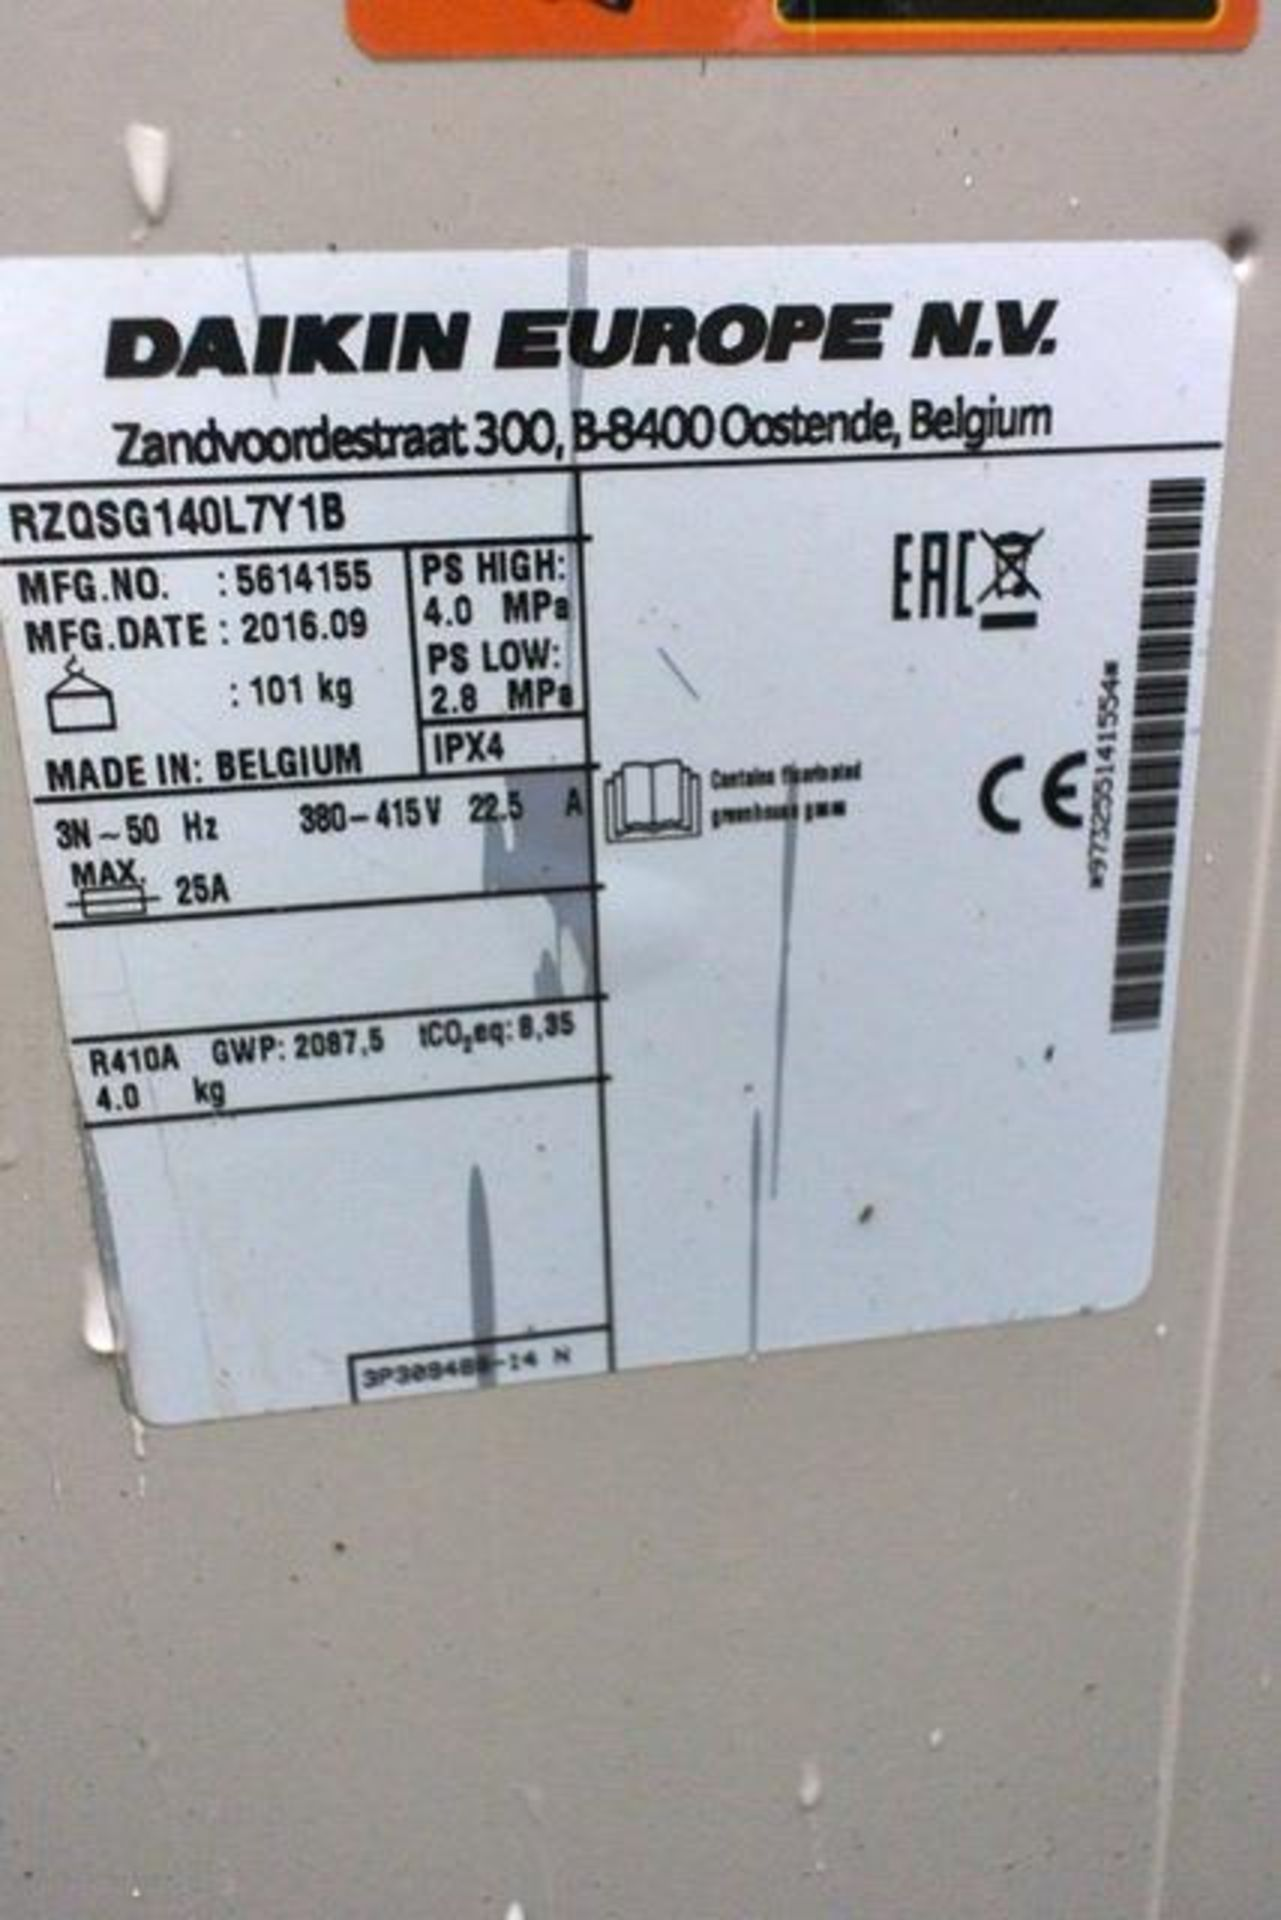 Two Daiken RZQSG140 L7Y1B, serial nos. 5614161 and 5614155, refrigerant R410A (2016) (PAC 021 & - Image 2 of 2